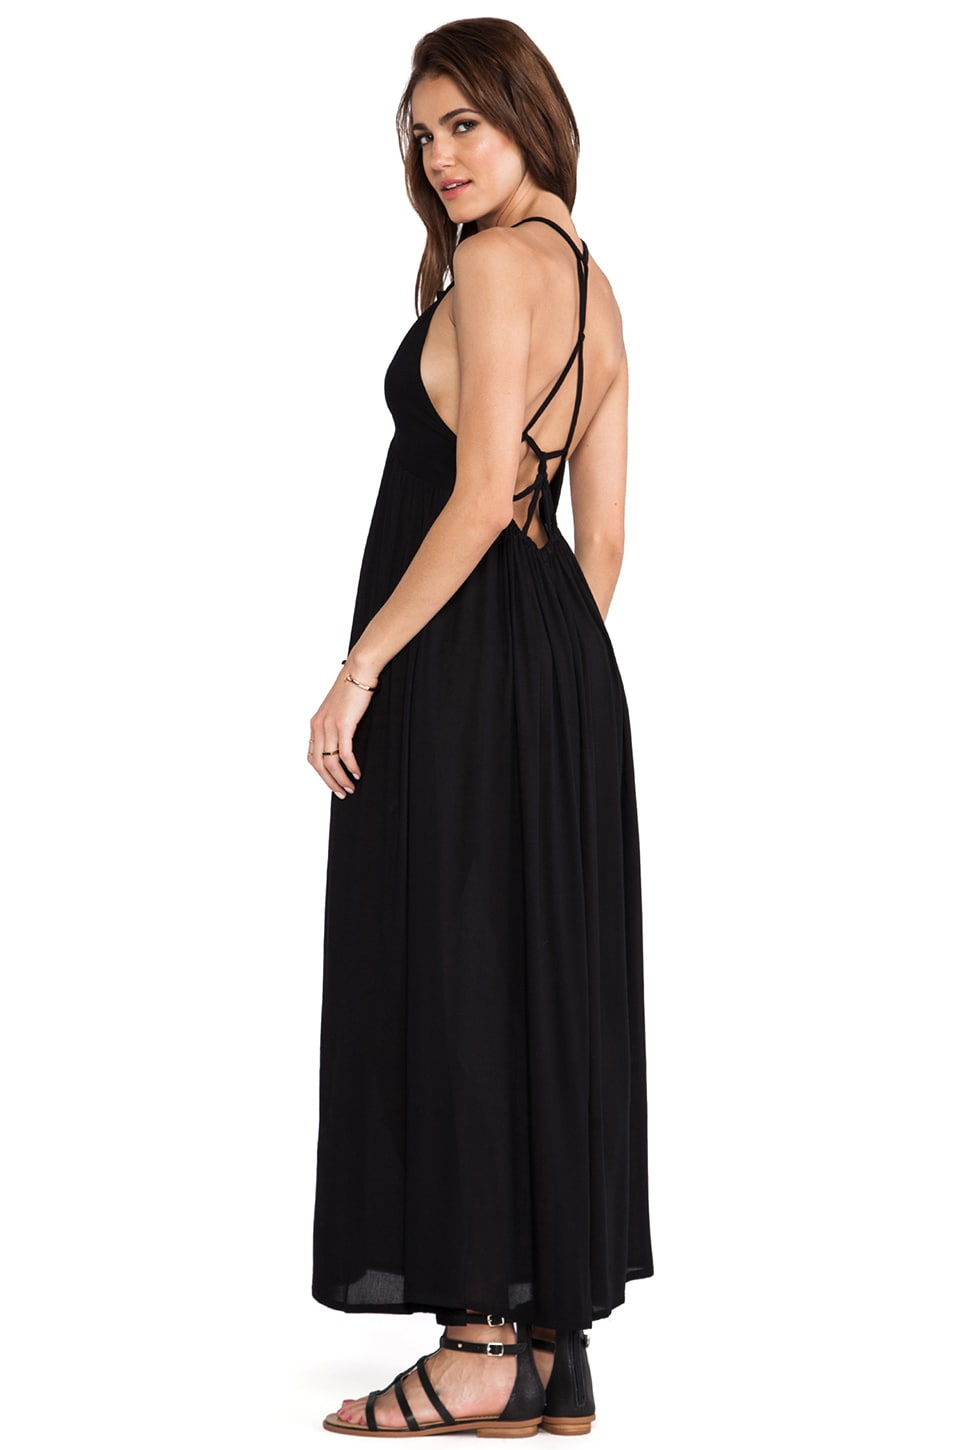 Tiare Hawaii Adair Maxi Dress in Black